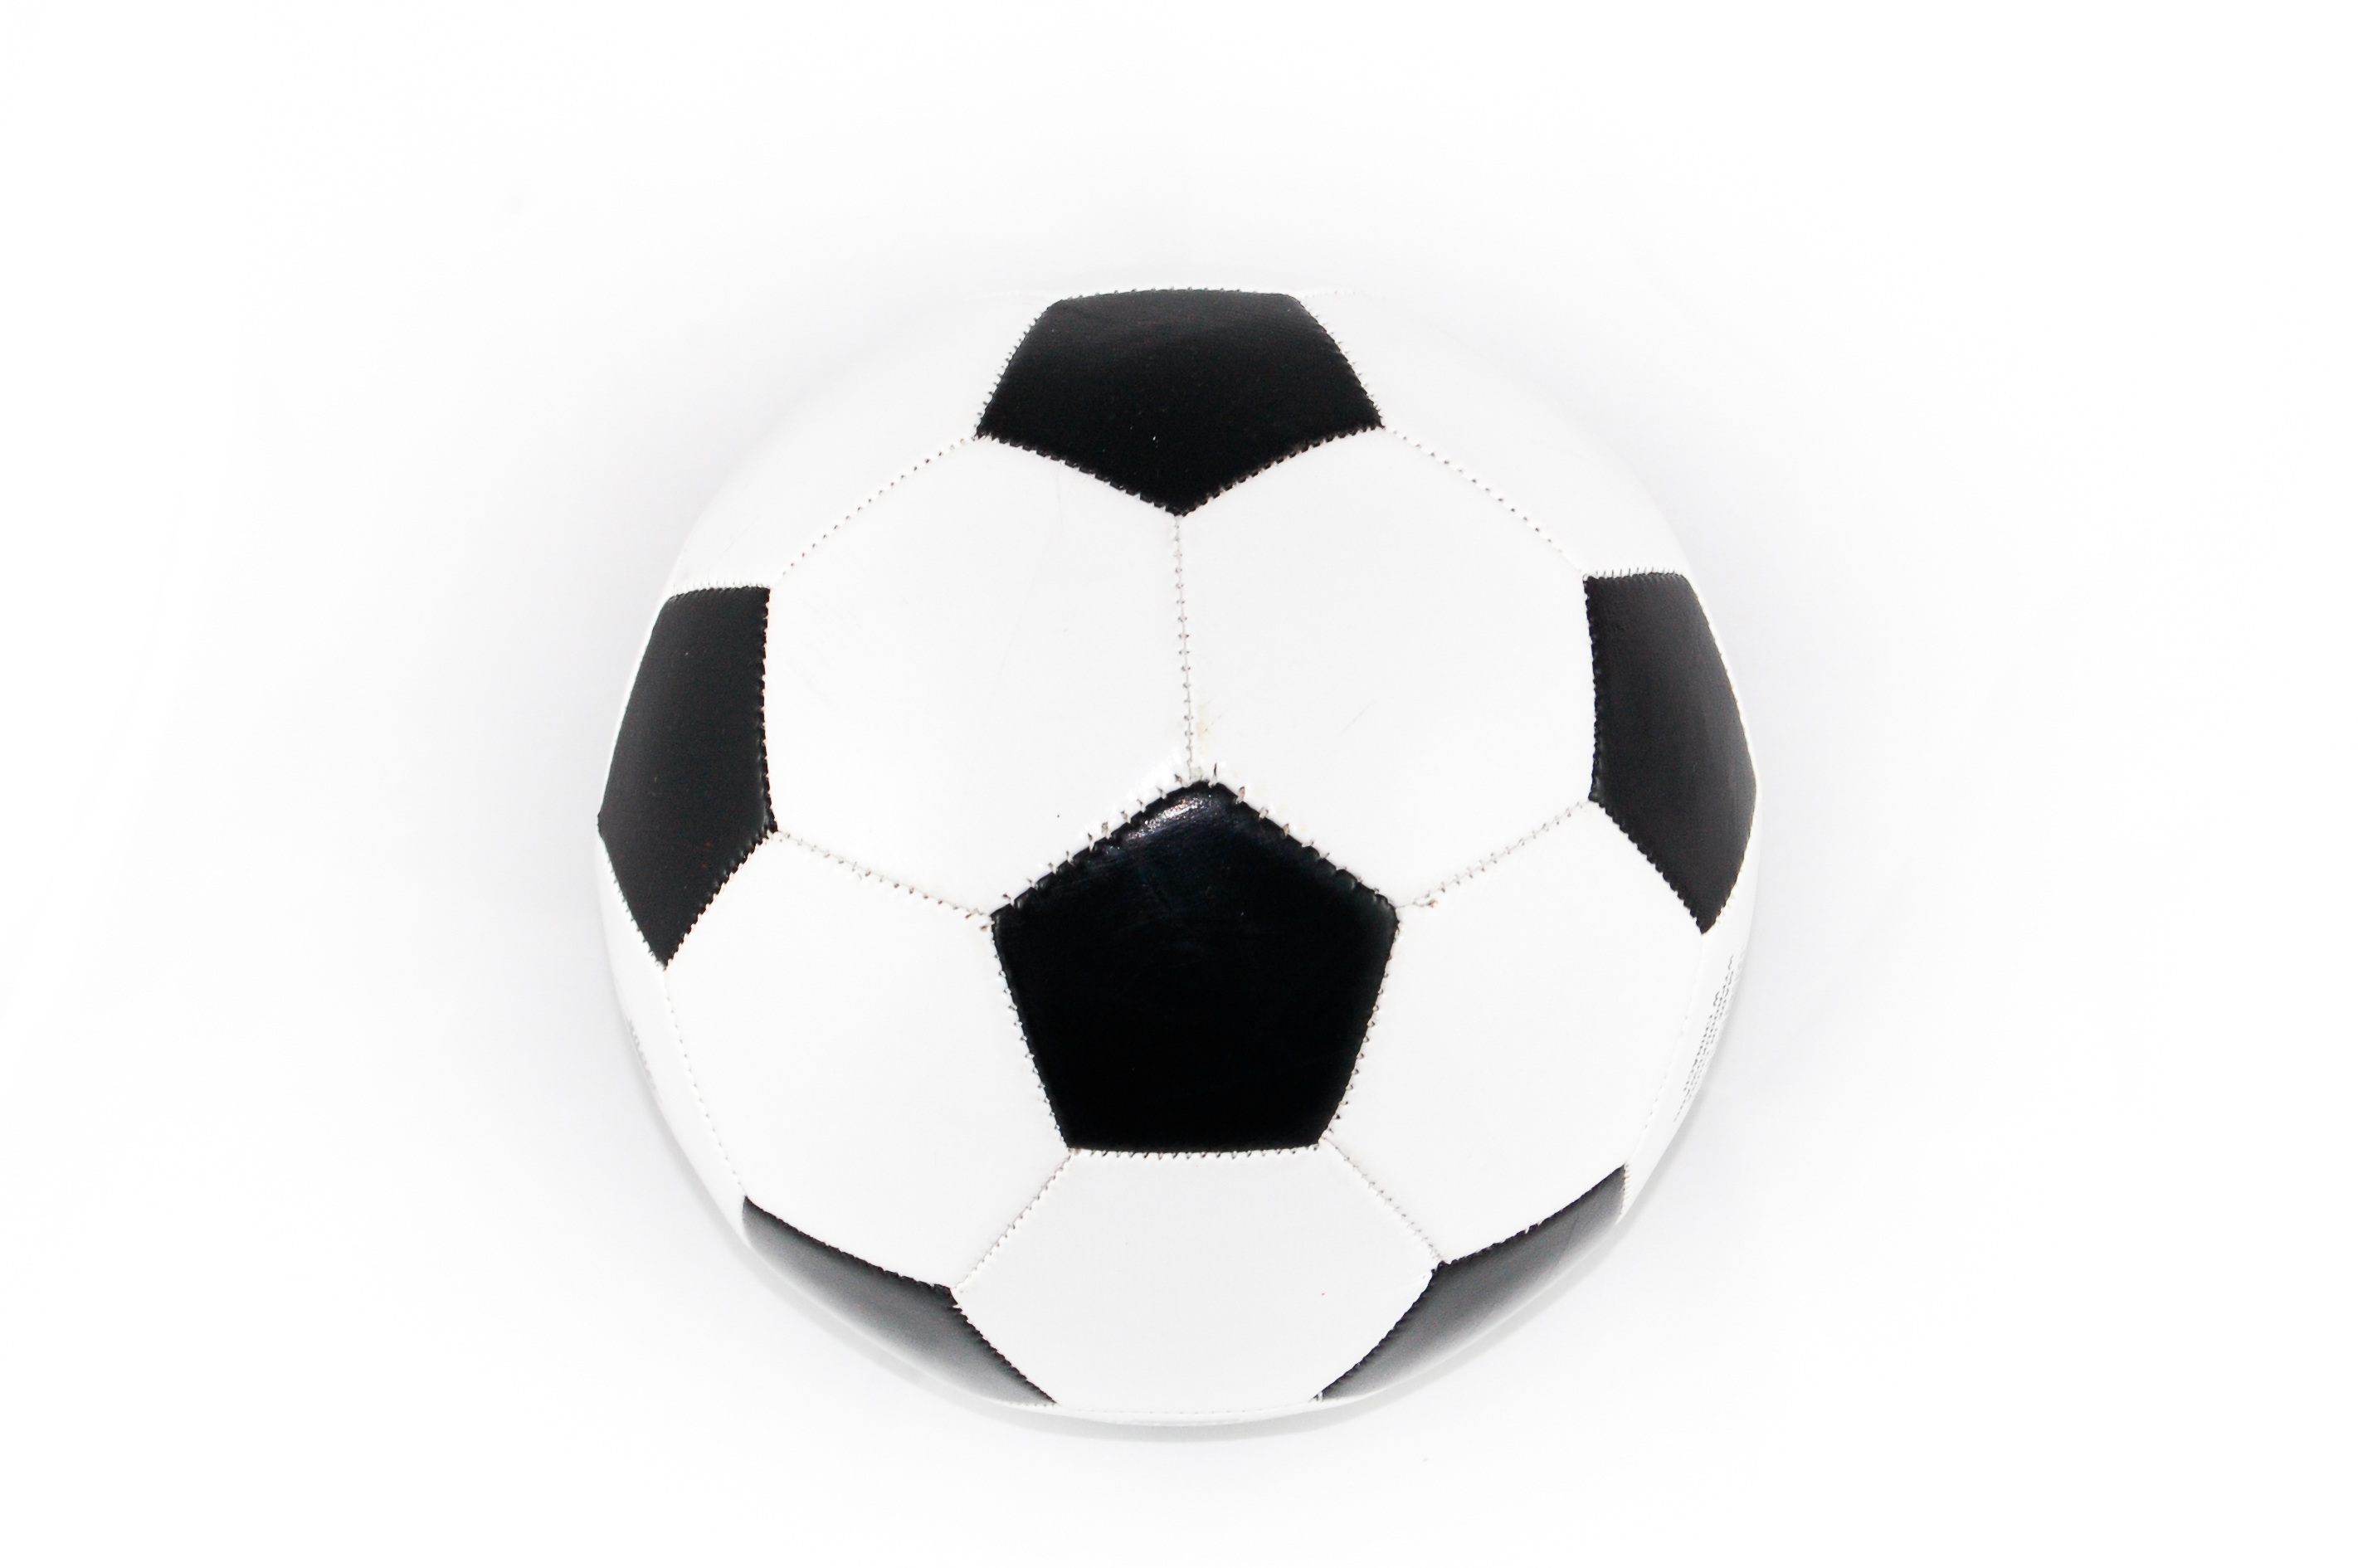 2842x1890 Black And White Soccer Ball Free Stock Photo